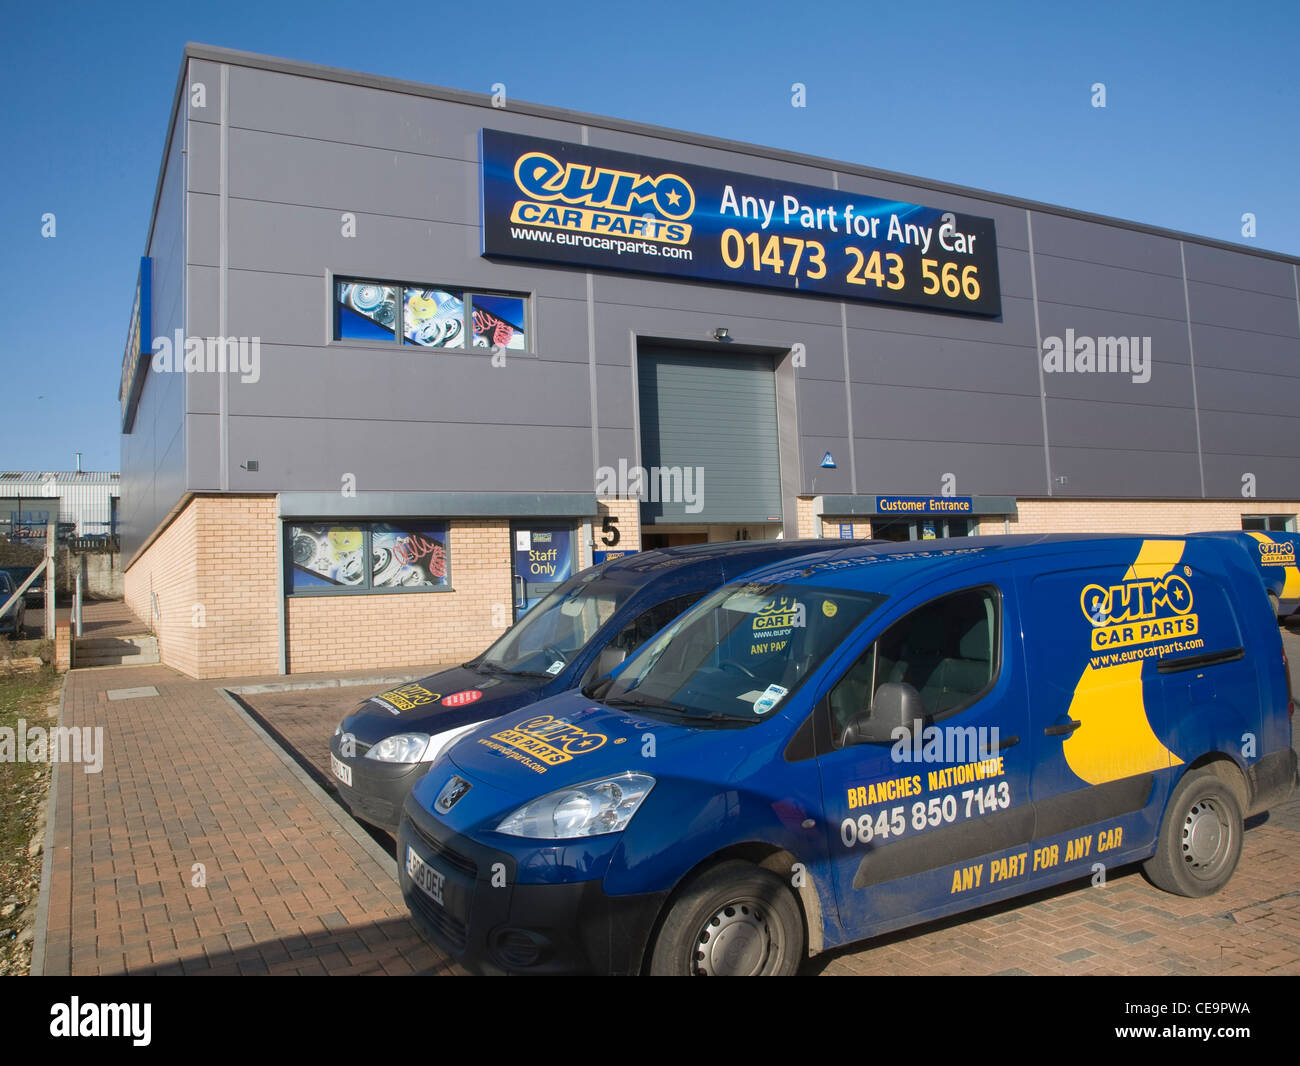 Euro Car Parts Depot Ipswich England Stock Photo 43241446 Alamy